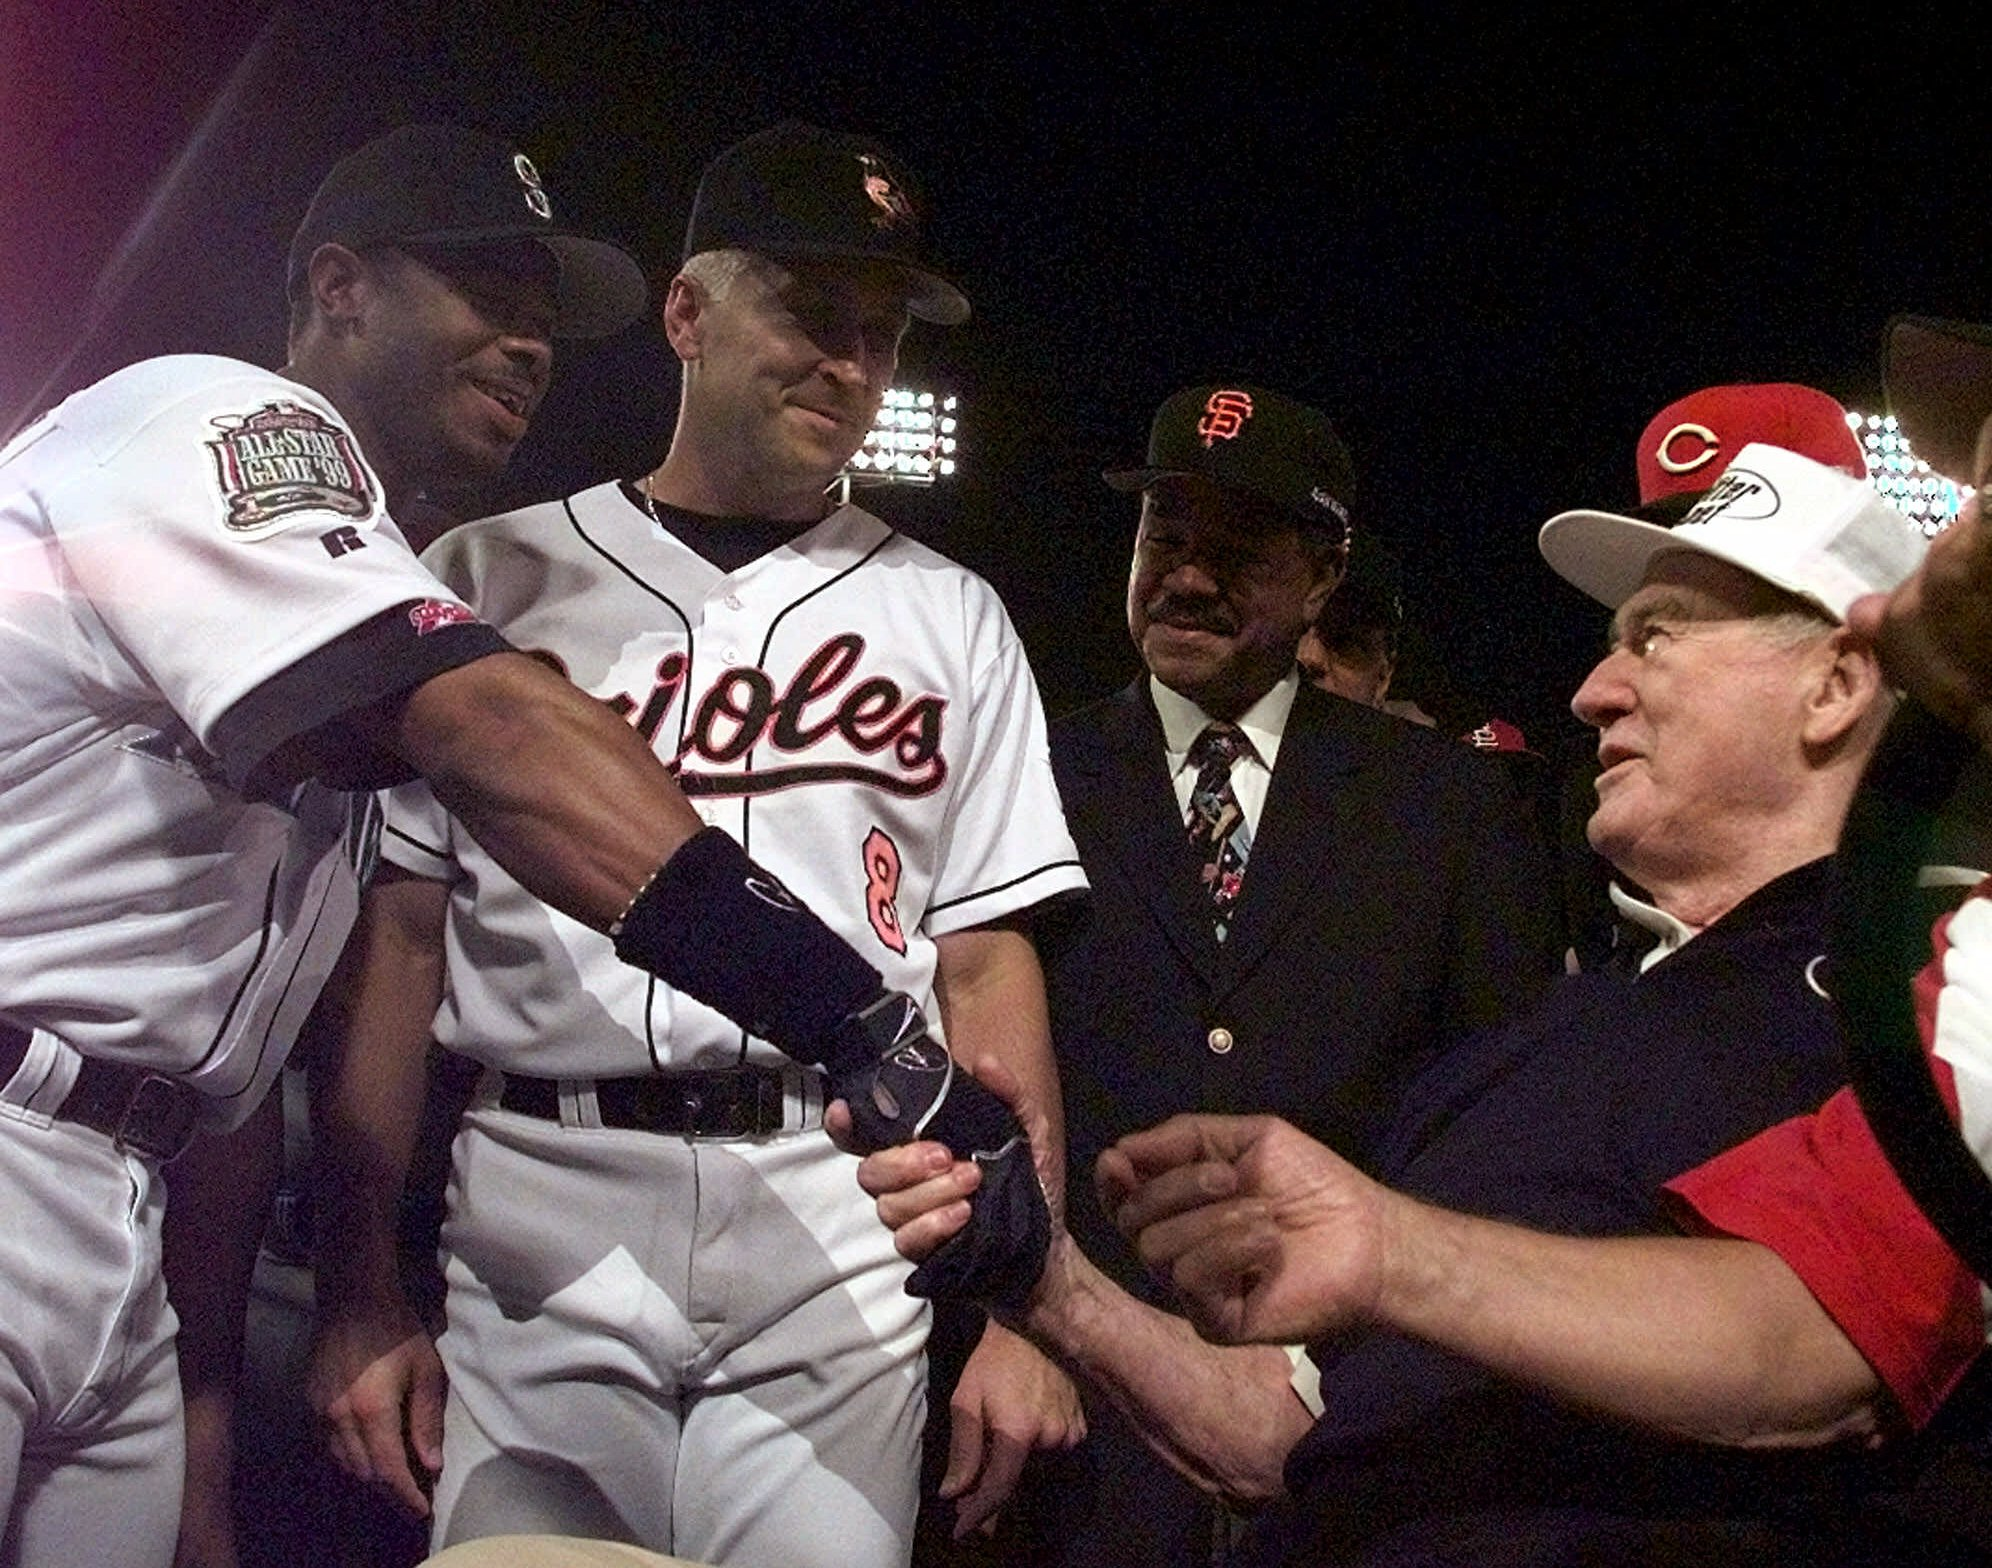 Baseball legend Ted Williams, right, is greeted by 1999 All-Stars Ken Griffey Jr., of the Seattle Mariners, left, and Baltimore Orioles' Cal Ripken prior to the All-Star game Tuesday, July 13, 1999 at Boston's Fenway Park.